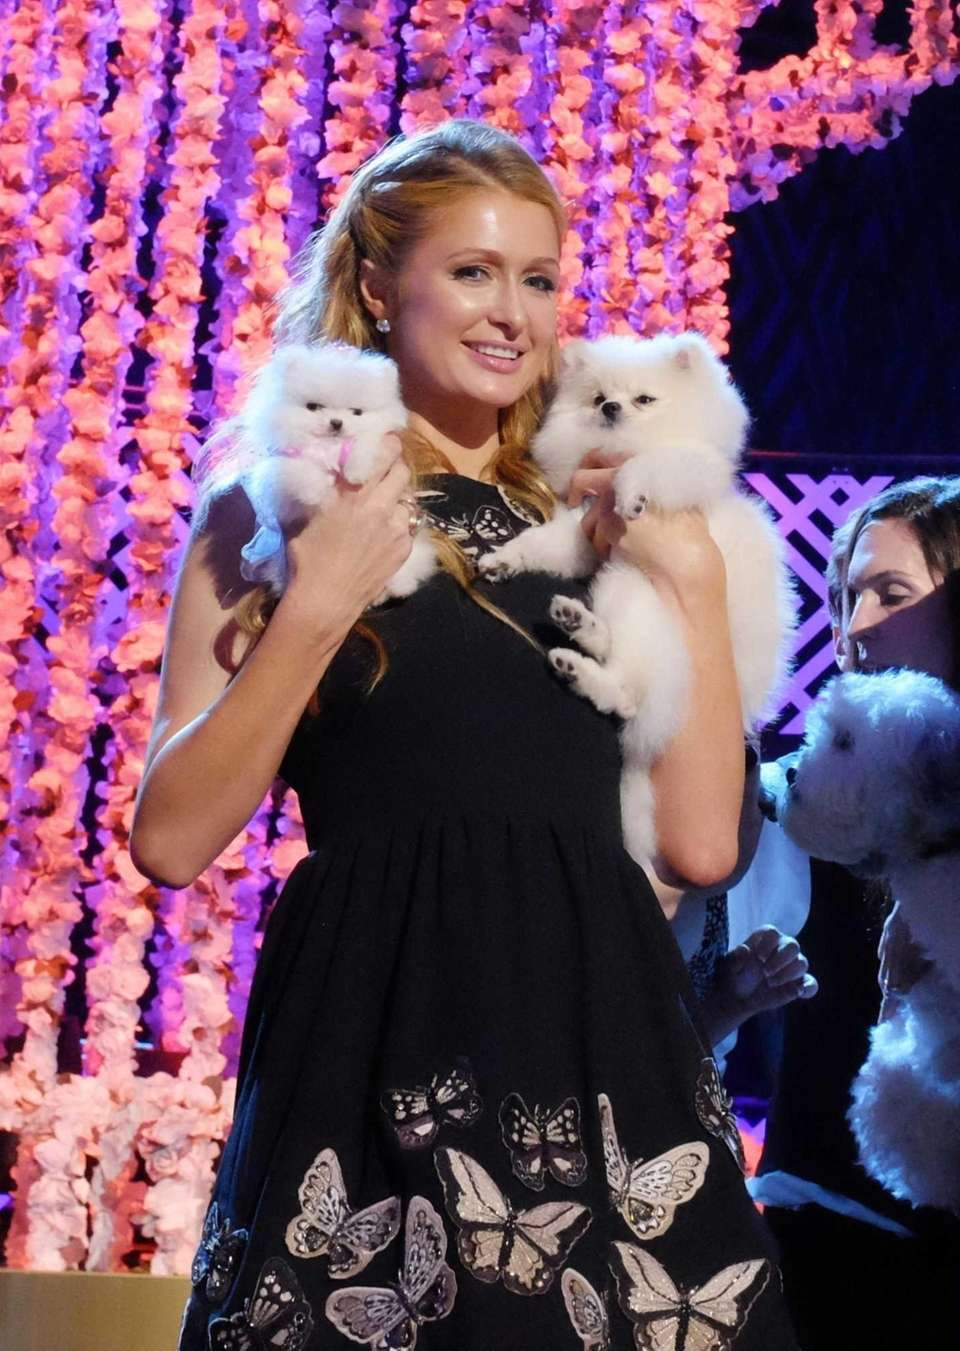 Paris Hilton, accompanied by her Pomeranian dogs, Prince